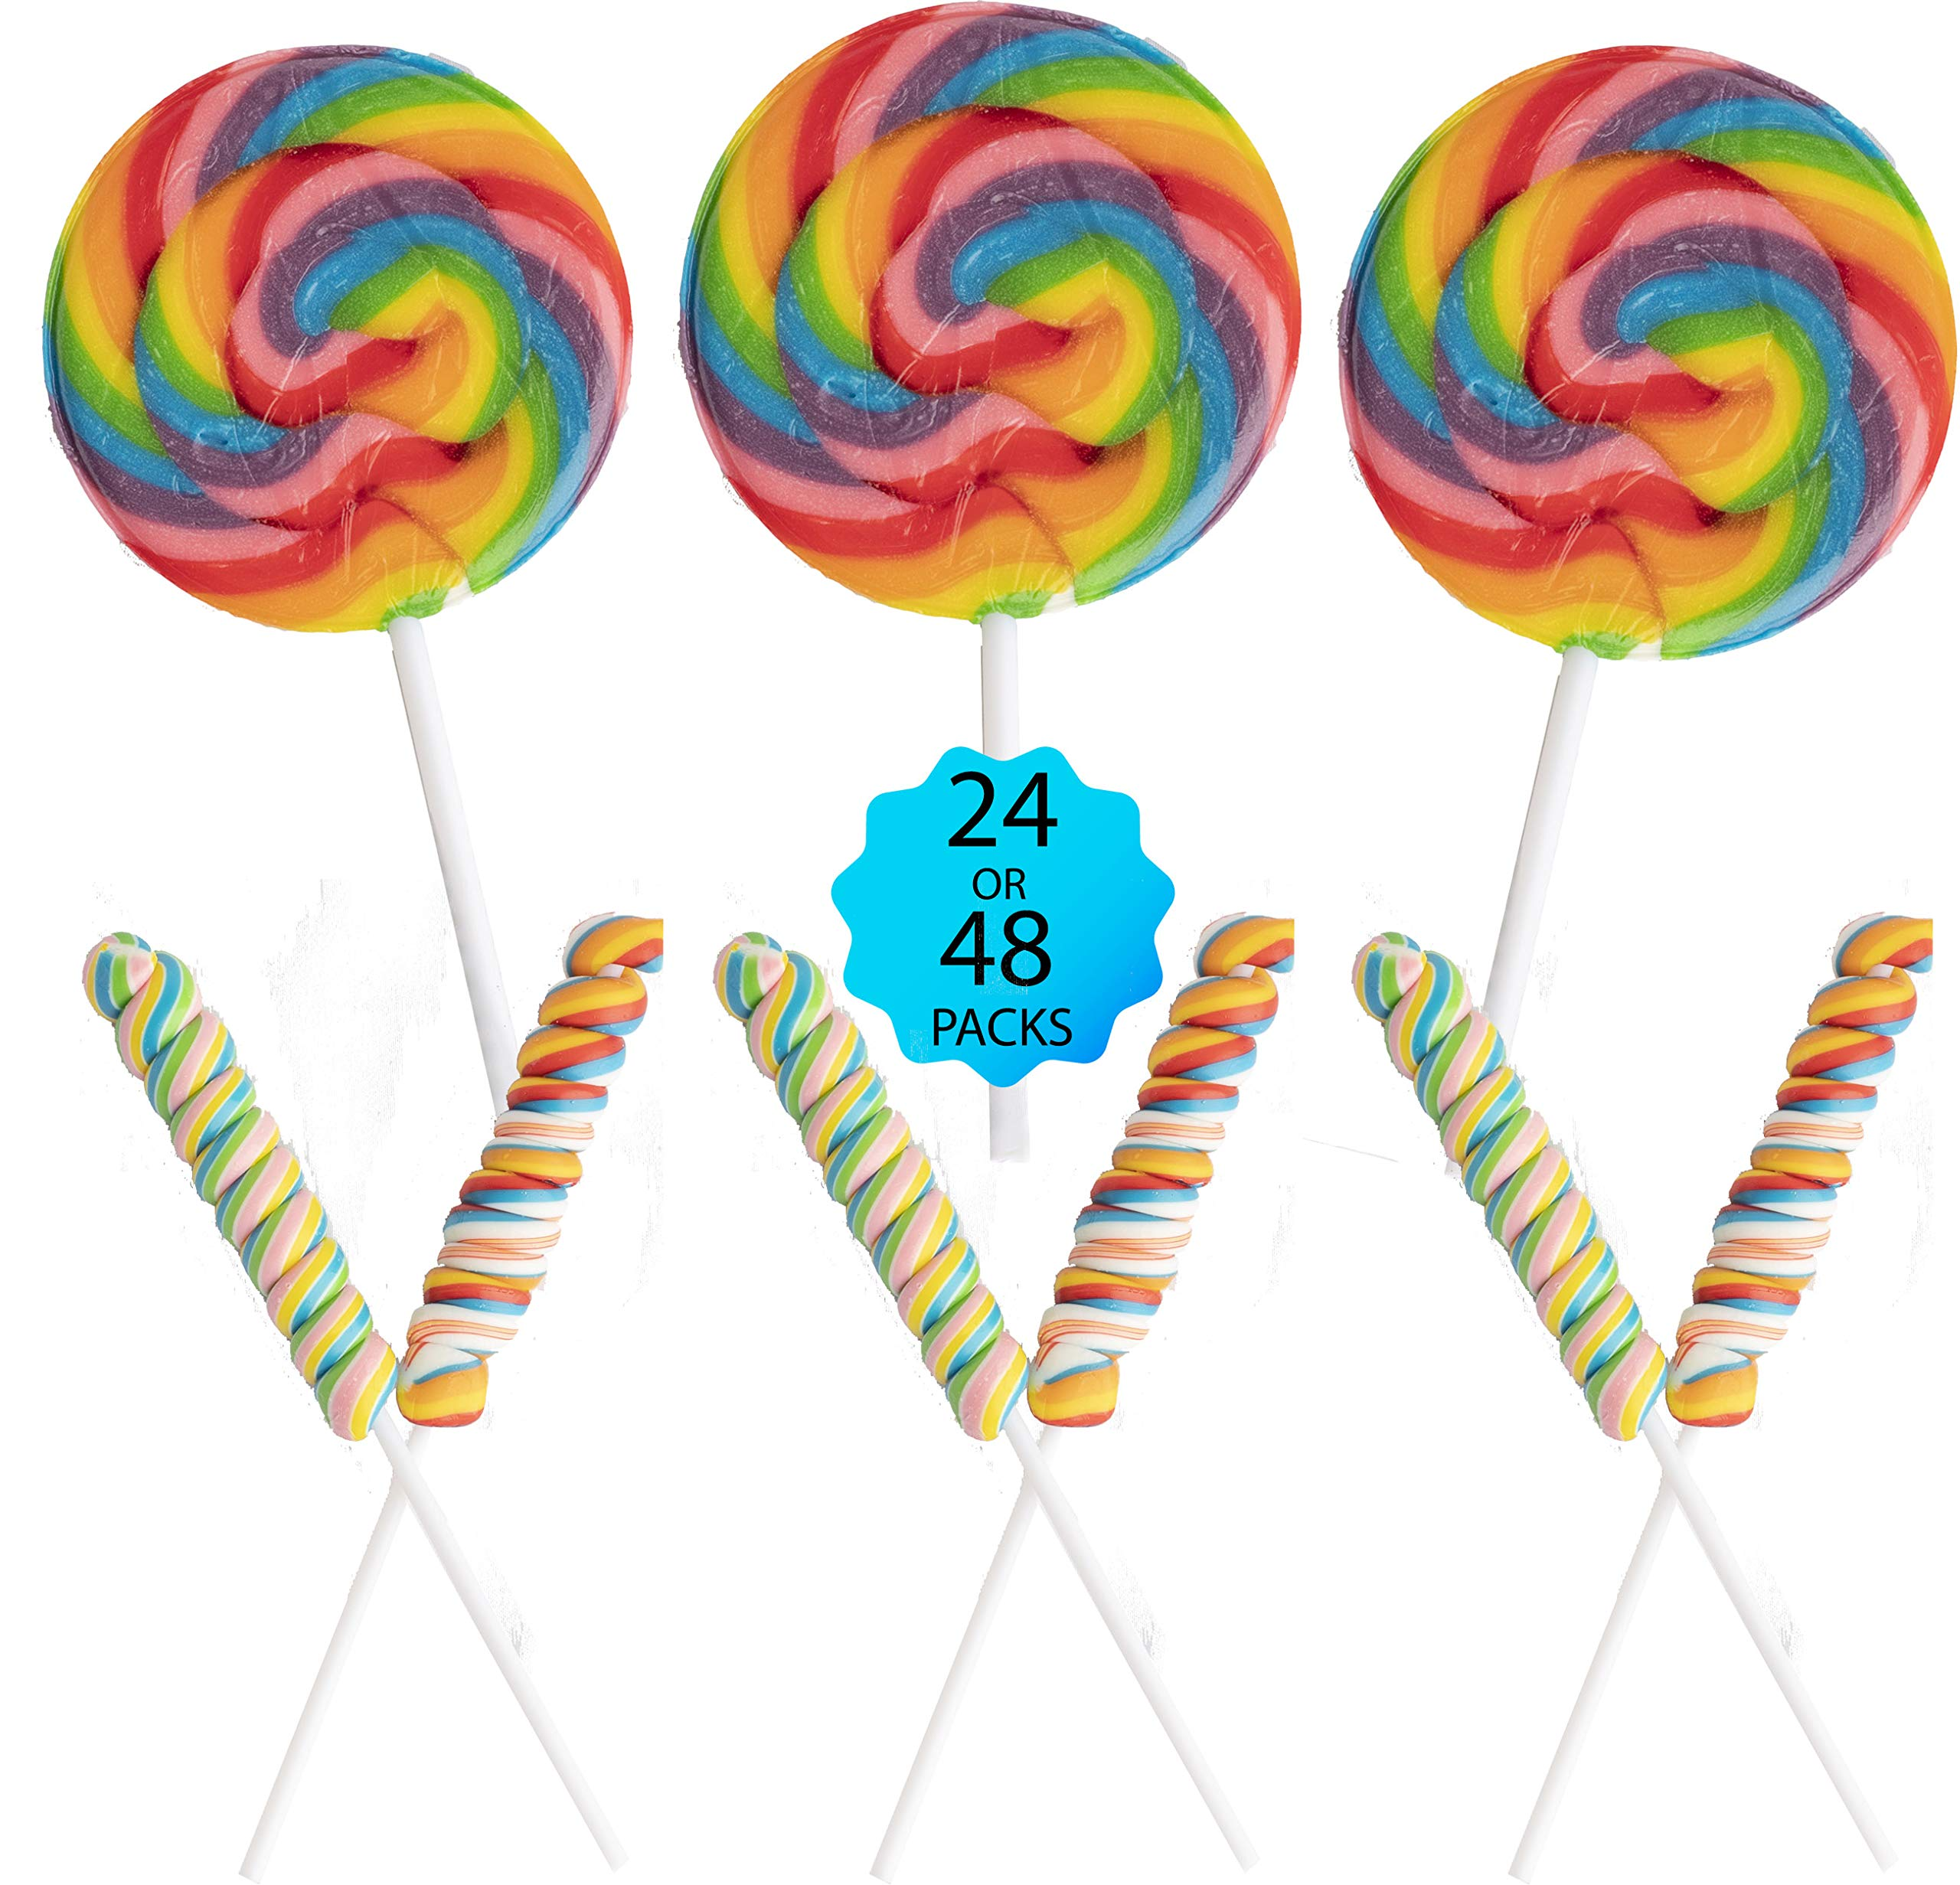 48 Large Swirl Candy Lollipops for Stay-at-Home Fun - 24 Rainbow Swirl Suckers & 24 Twisty Unicorn Pops * Home Quarantine Birthday Party Favors - 48 Pieces